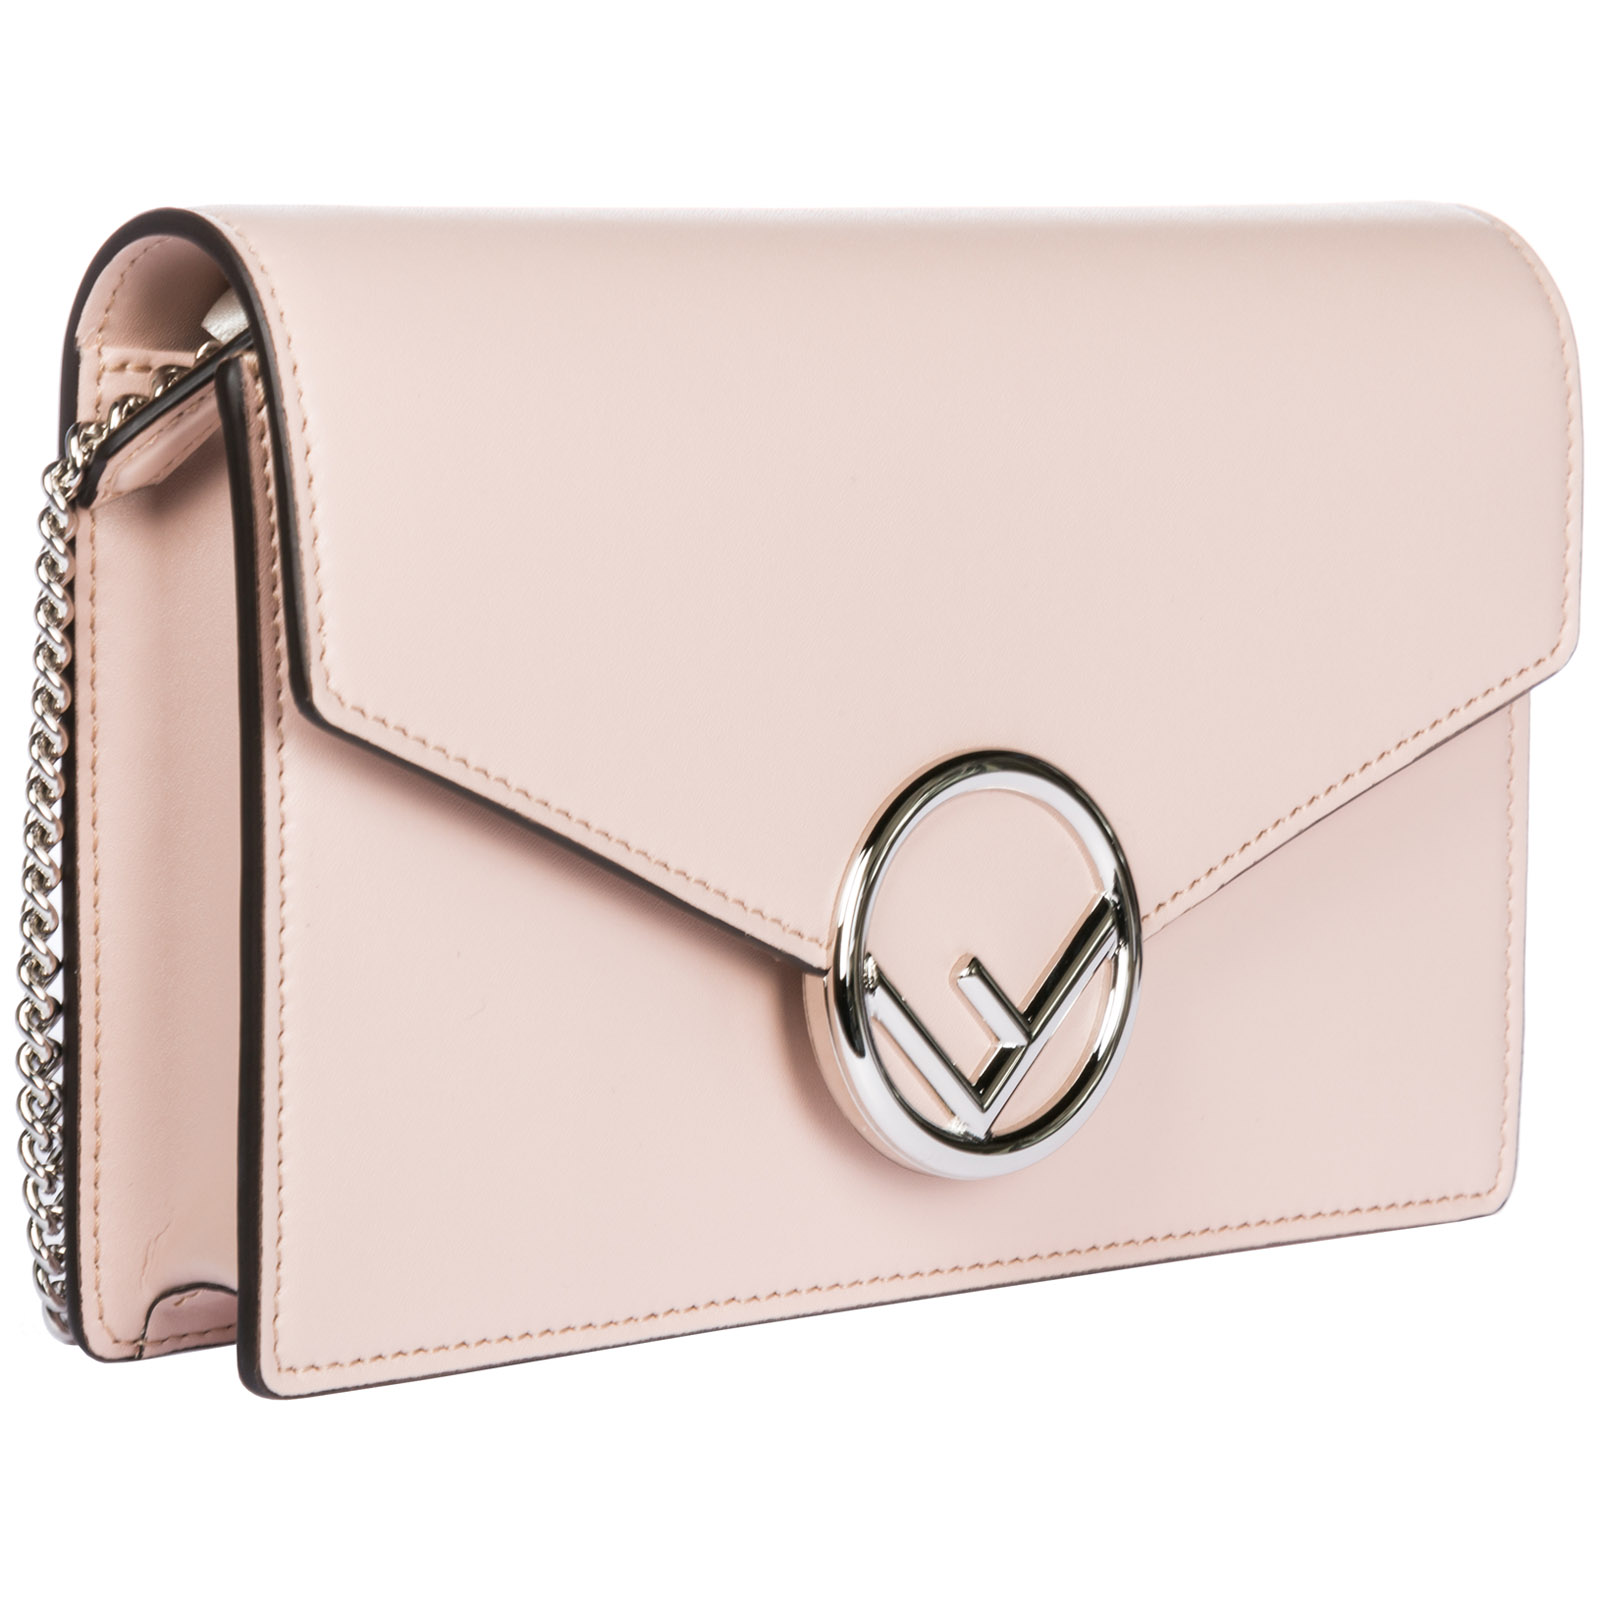 c3949db42b1c ... Women s leather shoulder bag wallet on chain ...